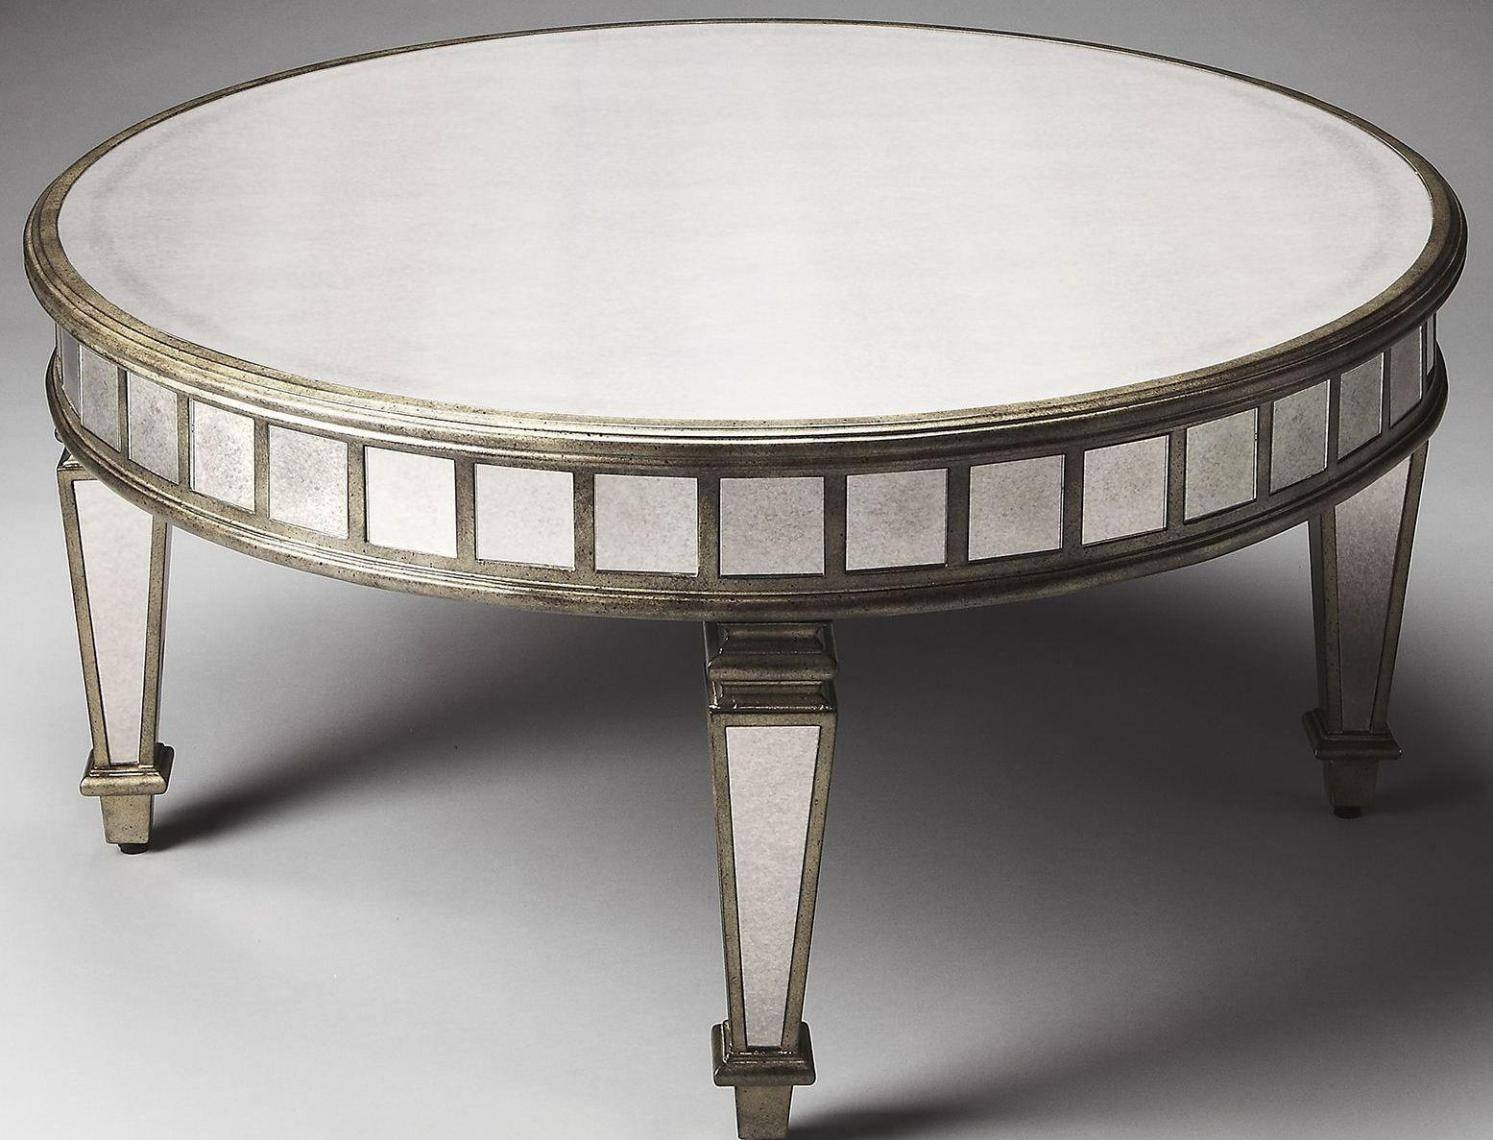 Luxury Oval Mirrored Coffee Table With Interior Decor Home With within Oval Mirrored Coffee Tables (Image 16 of 30)